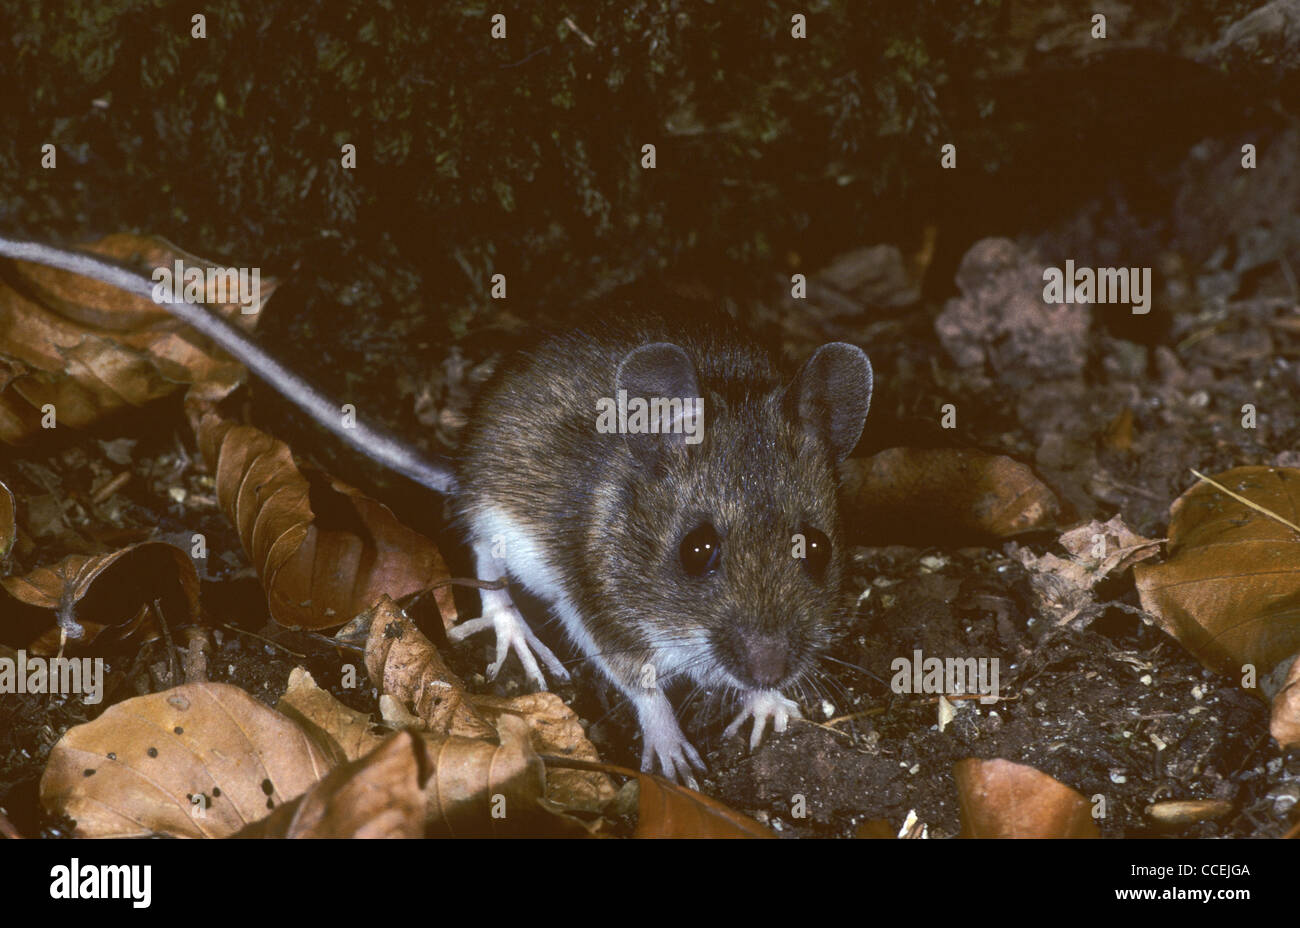 Wood Mouse Apodemus sylvaticus on woodland floor. UK - Stock Image